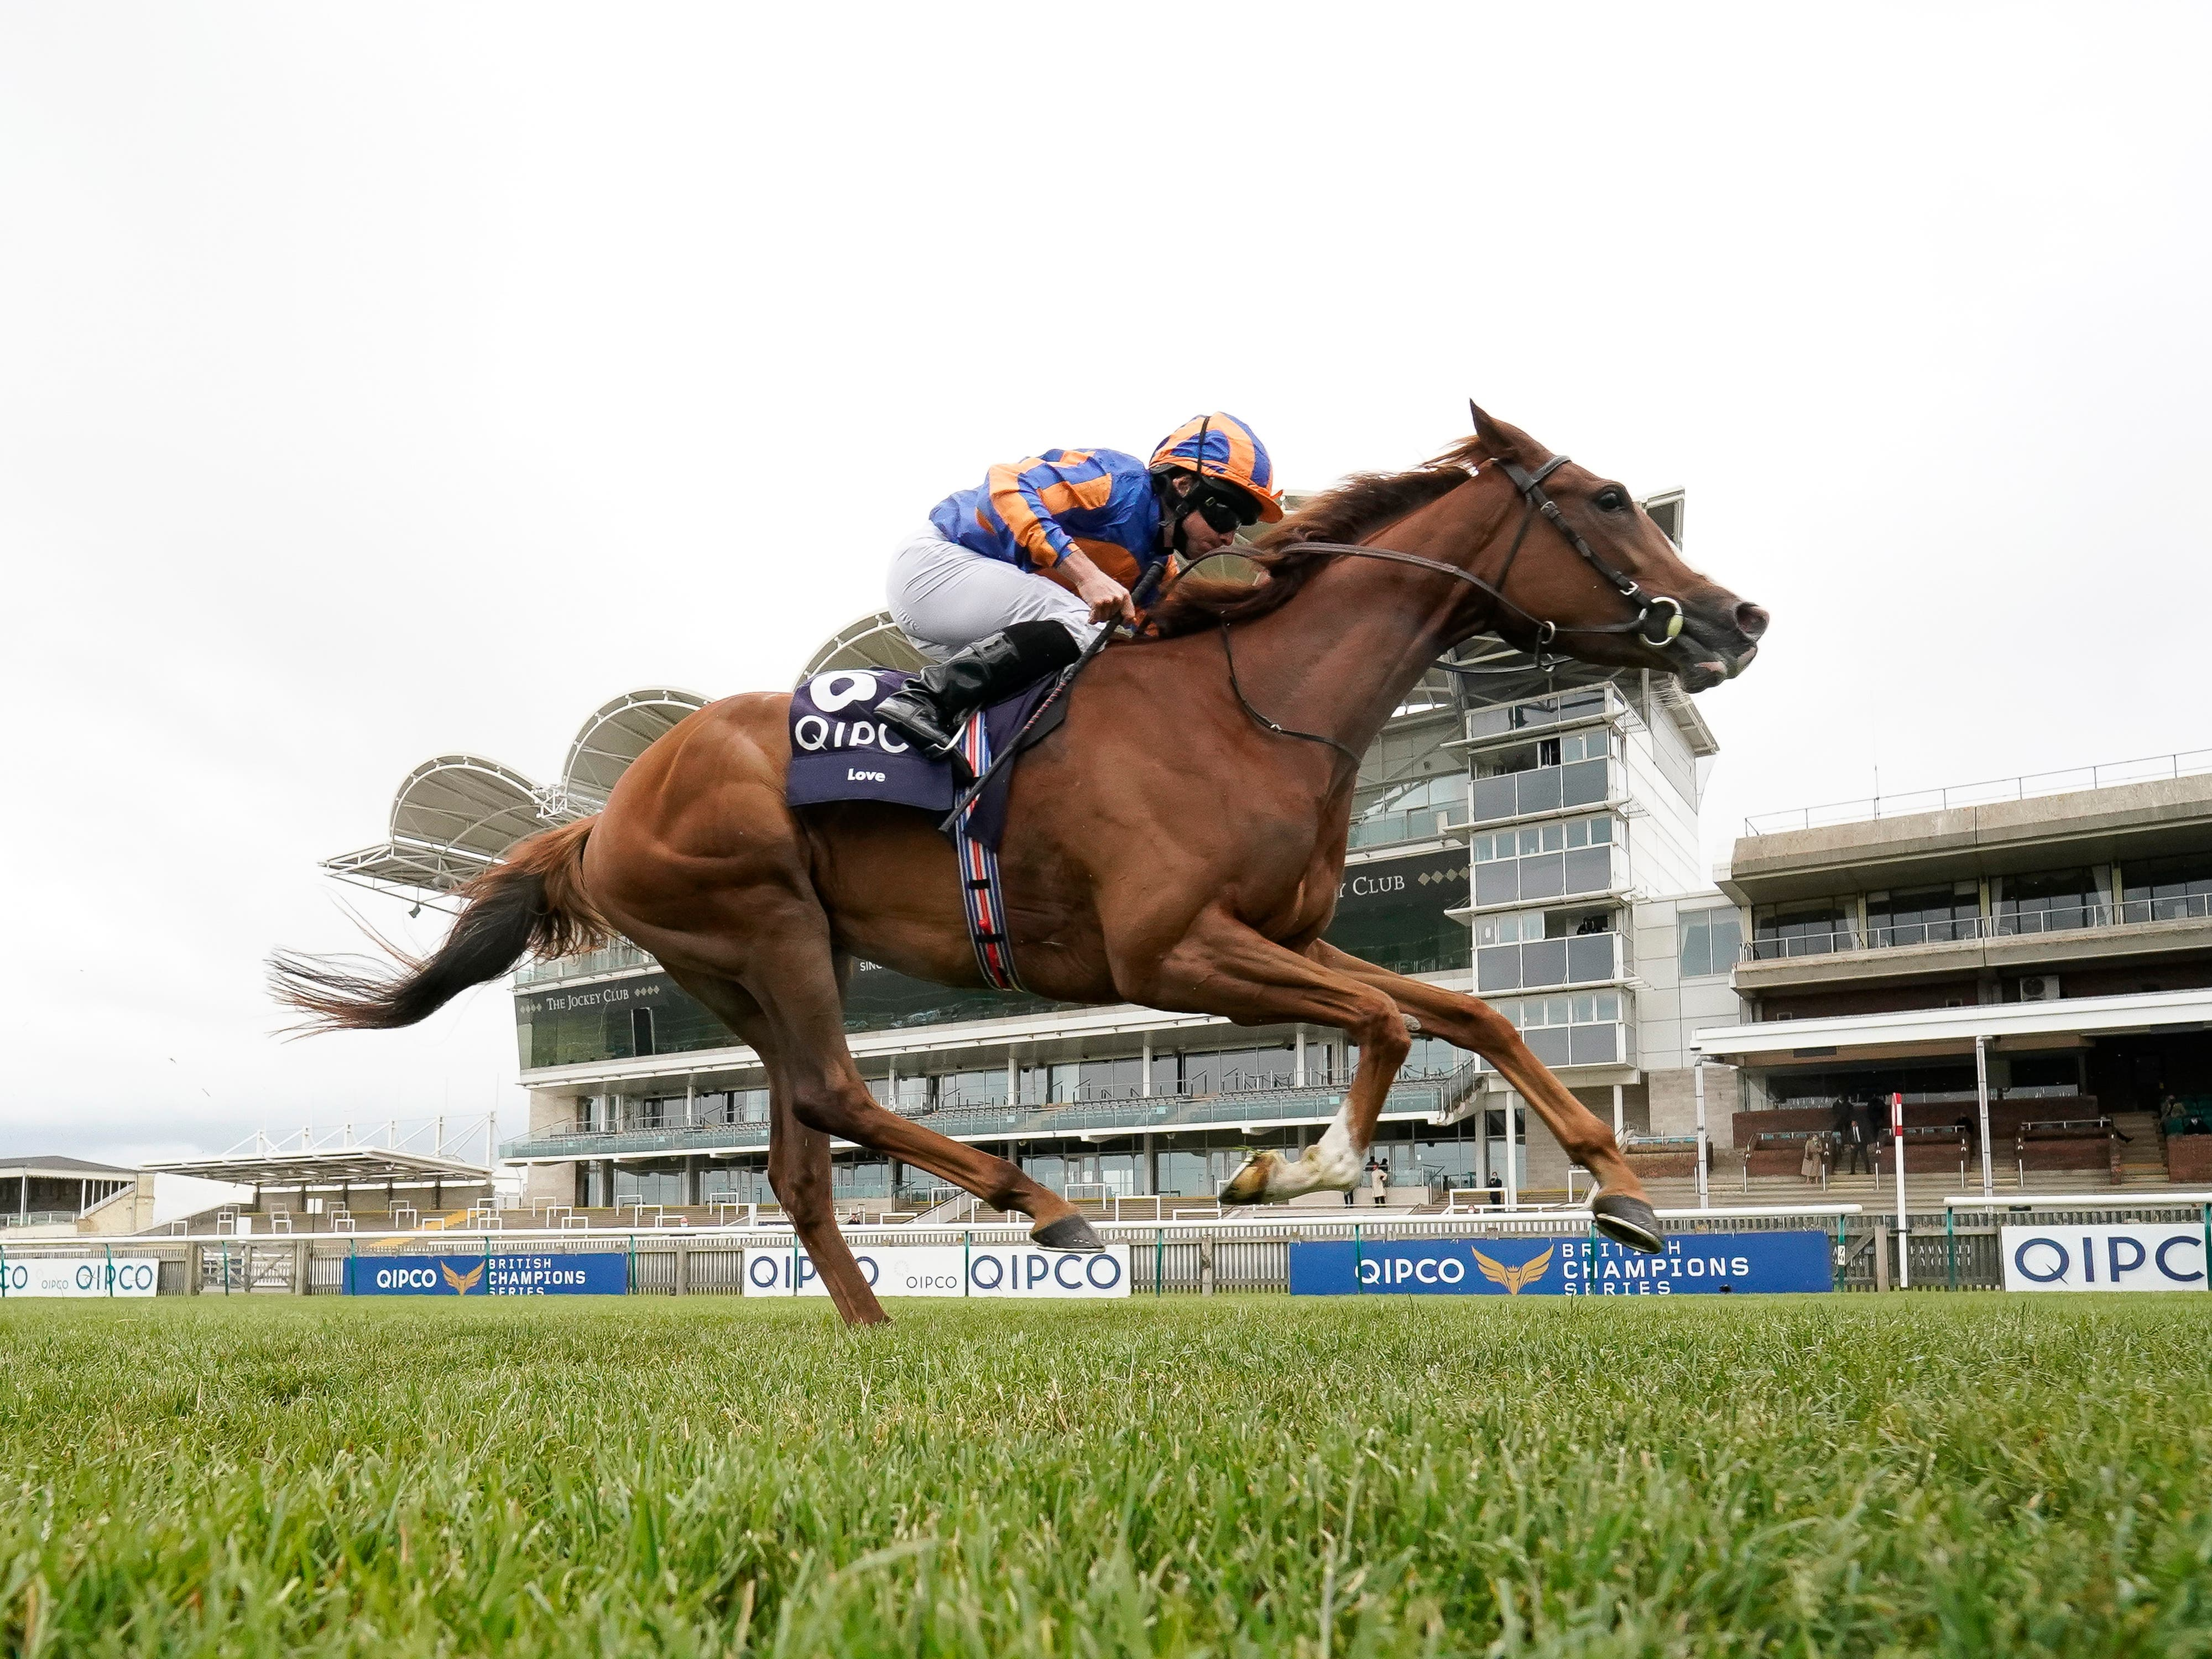 Qipco 1000 Guineas winner Love is among the entries for the Investec Oaks at Epsom on Saturday (Alan Crowhurst/PA)